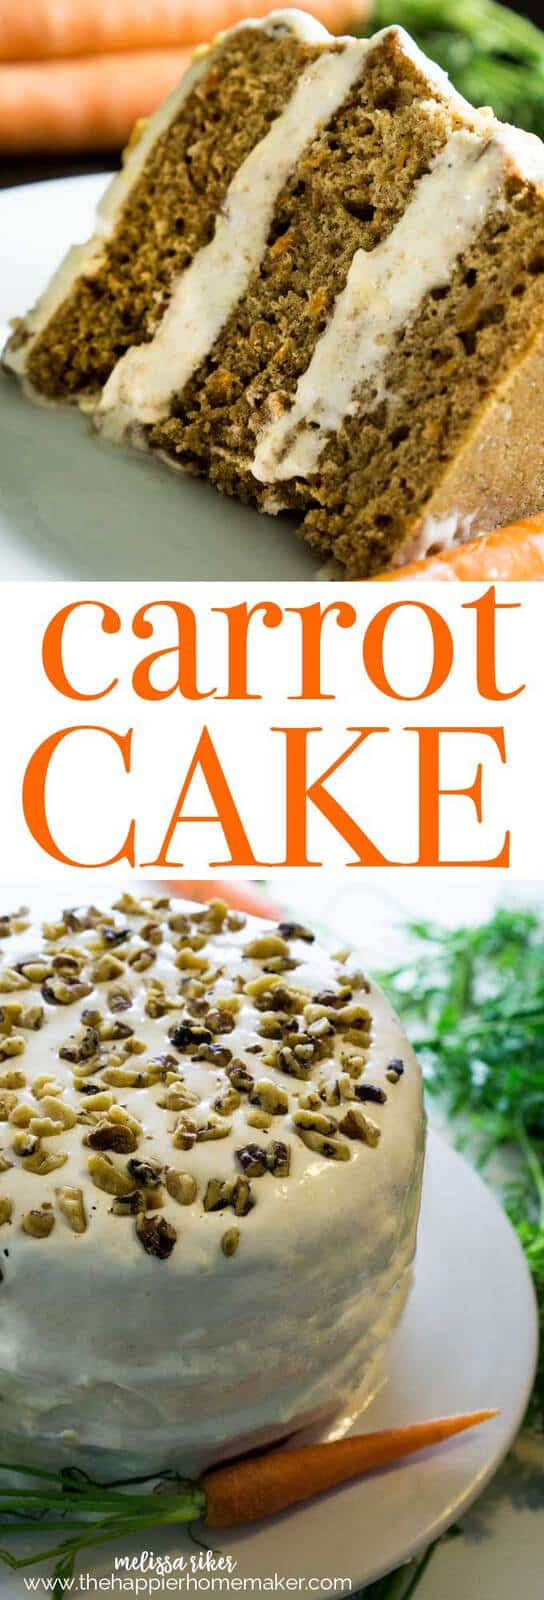 Classic Carrot Cake recipe with dense, moist perfectly spiced texture and plenty of rich cream cheese frosting!